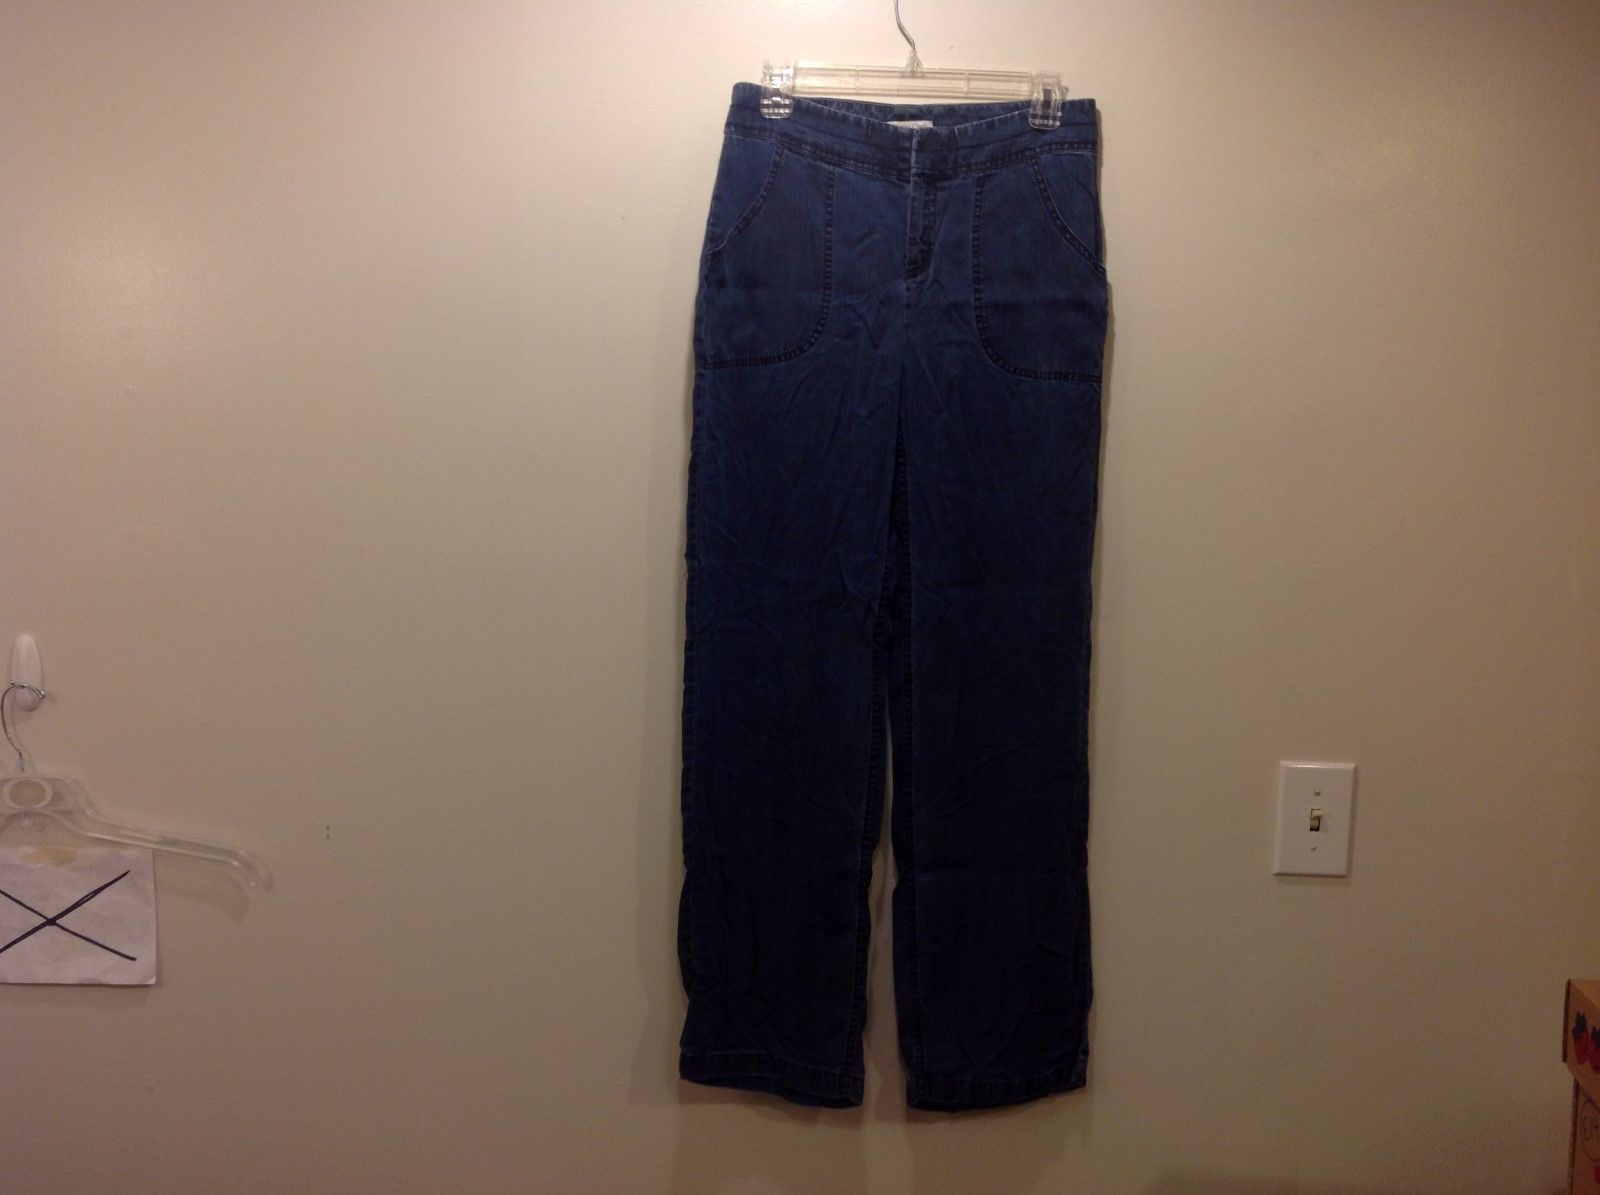 Coldwater Creek Denim-like Blue Pocketed Pants Sz 6